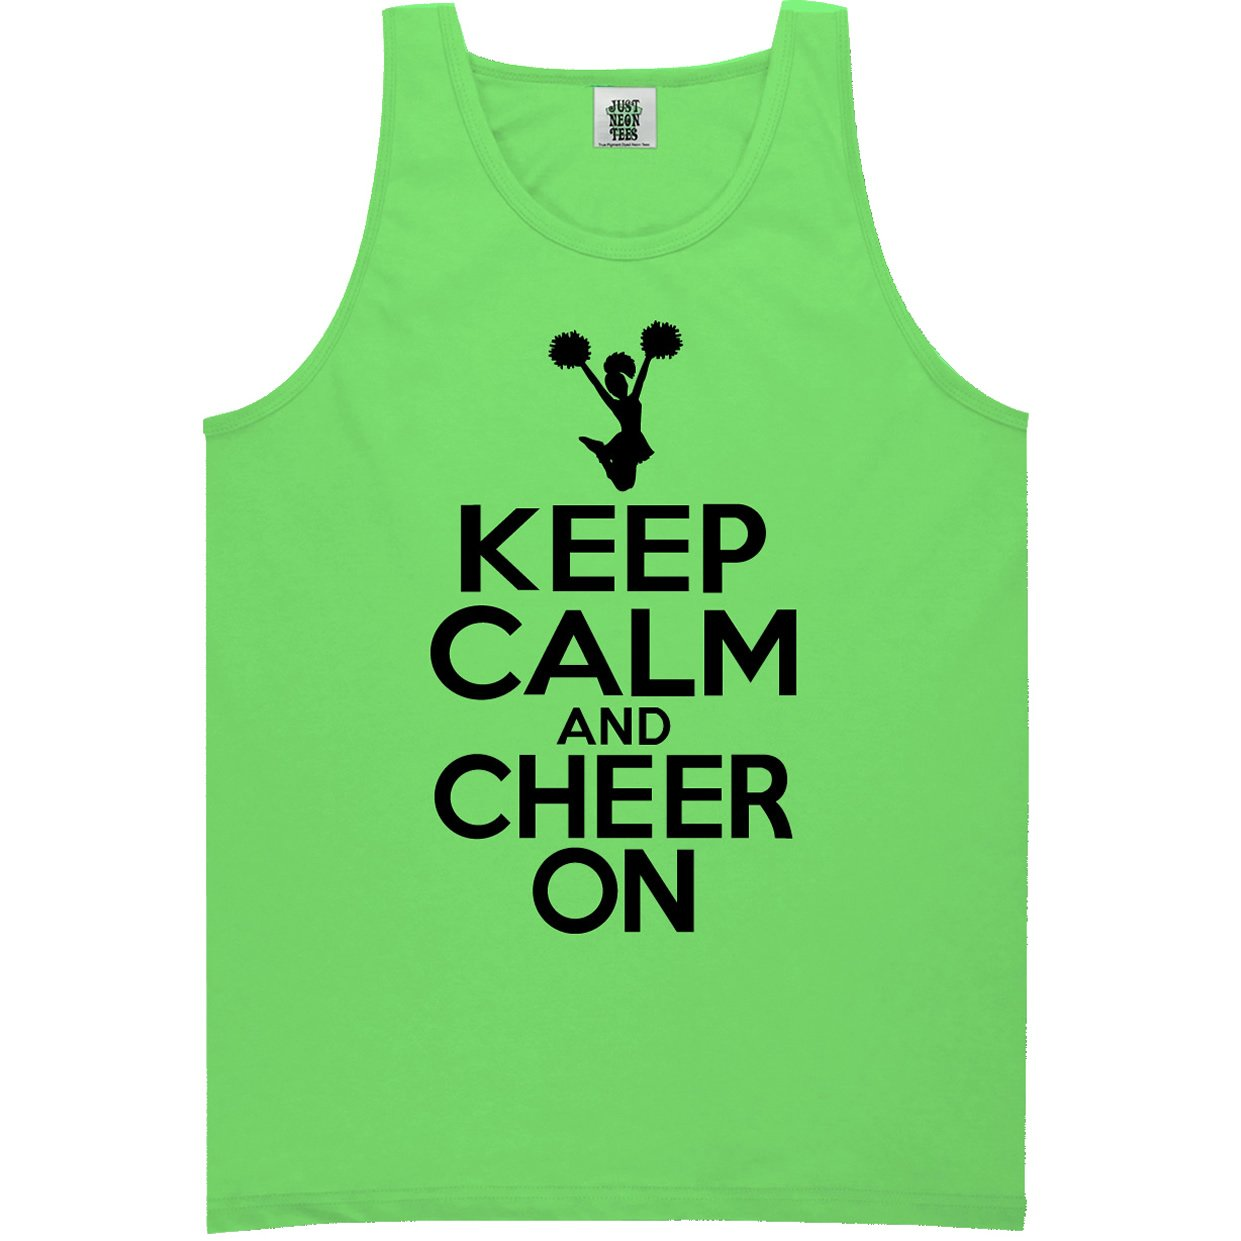 Youth Keep Calm and Cheer On Bright Neon Tank Top - 6 Bright Colors PA-YTNEON-68-TK